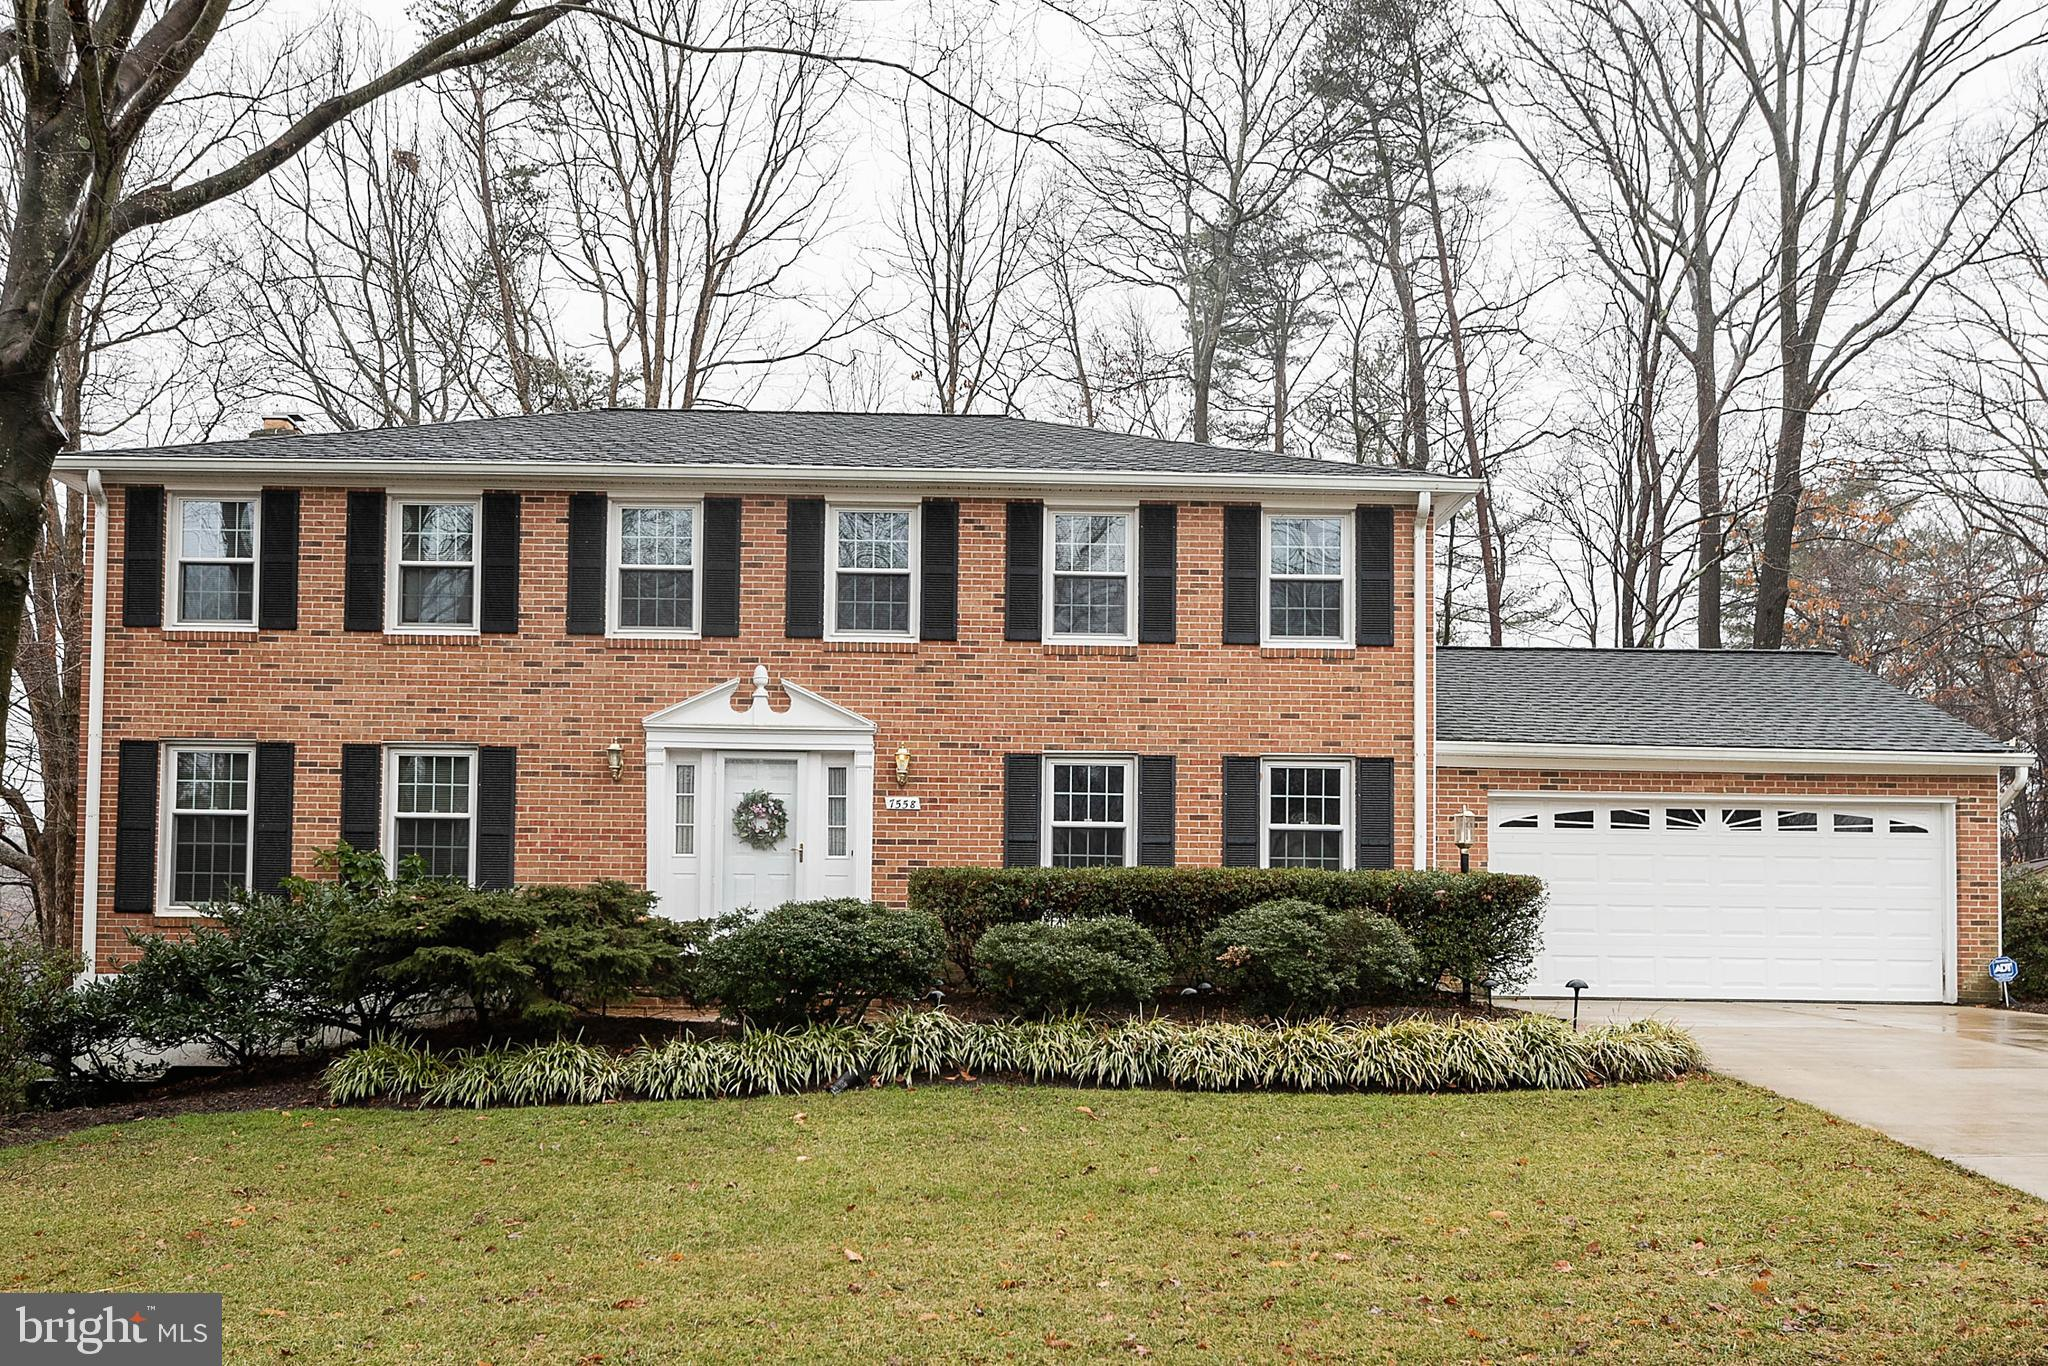 7558 VOGELS WAY, SPRINGFIELD, VA 22153